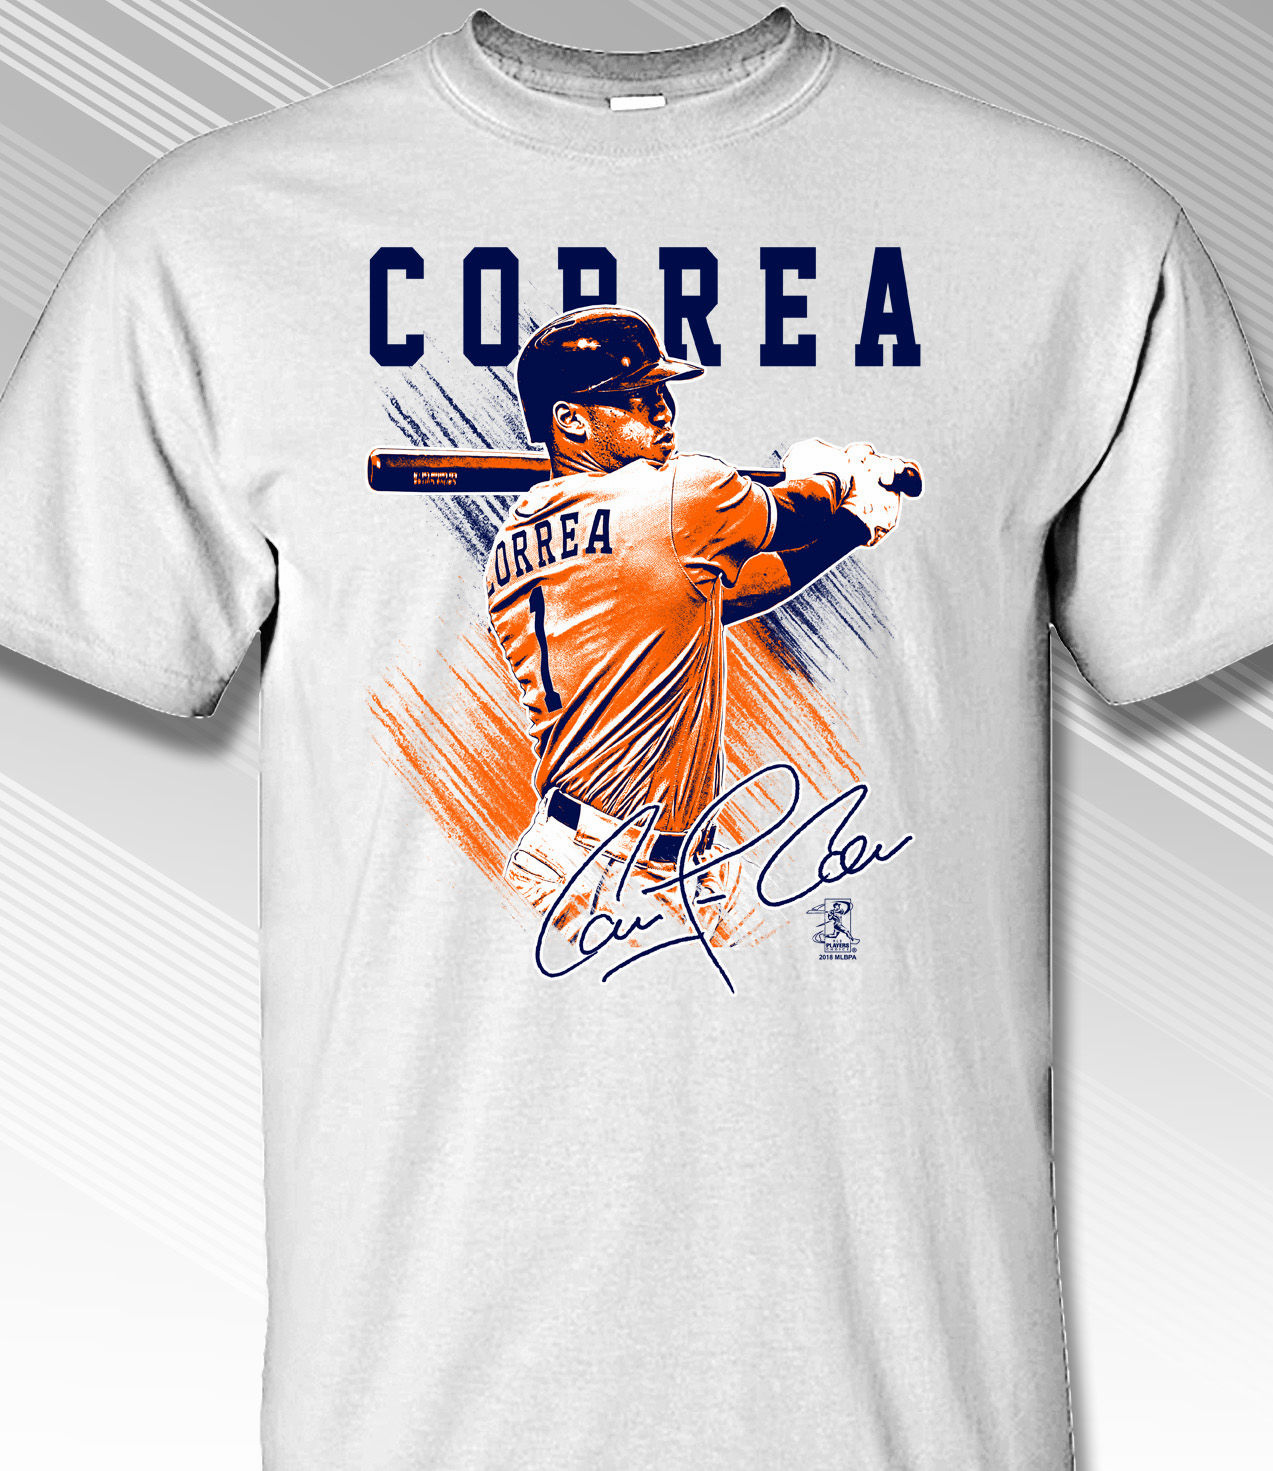 Carlos Correa Houston Pastels T-Shirt<br>Short or Long Sleeve<br>Youth Med to Adult 4X